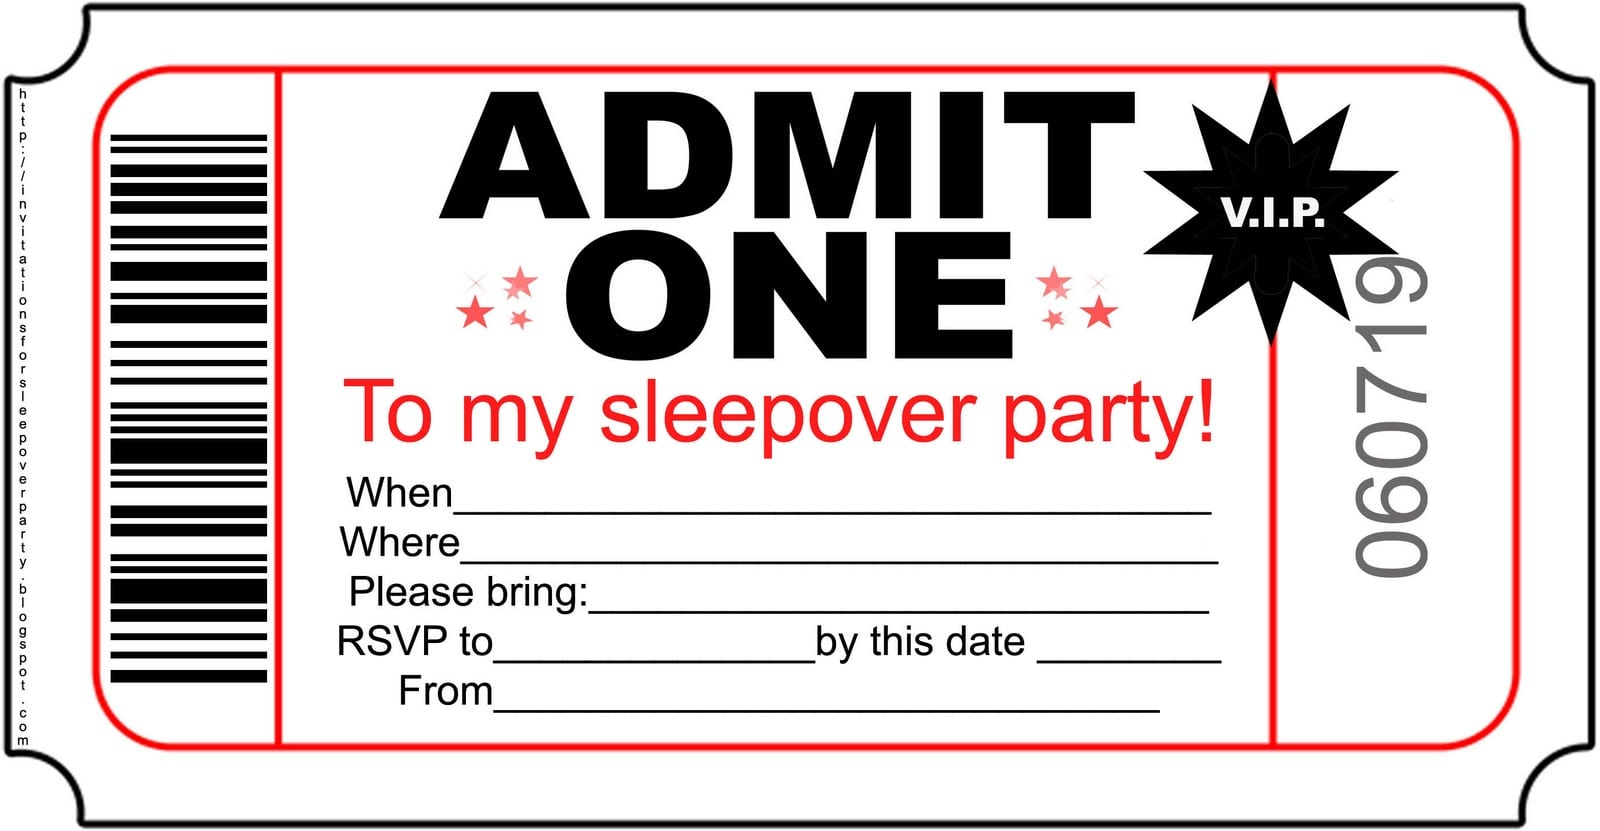 Boys Party Invitations Alluring Boys Party Invitations Hd Images